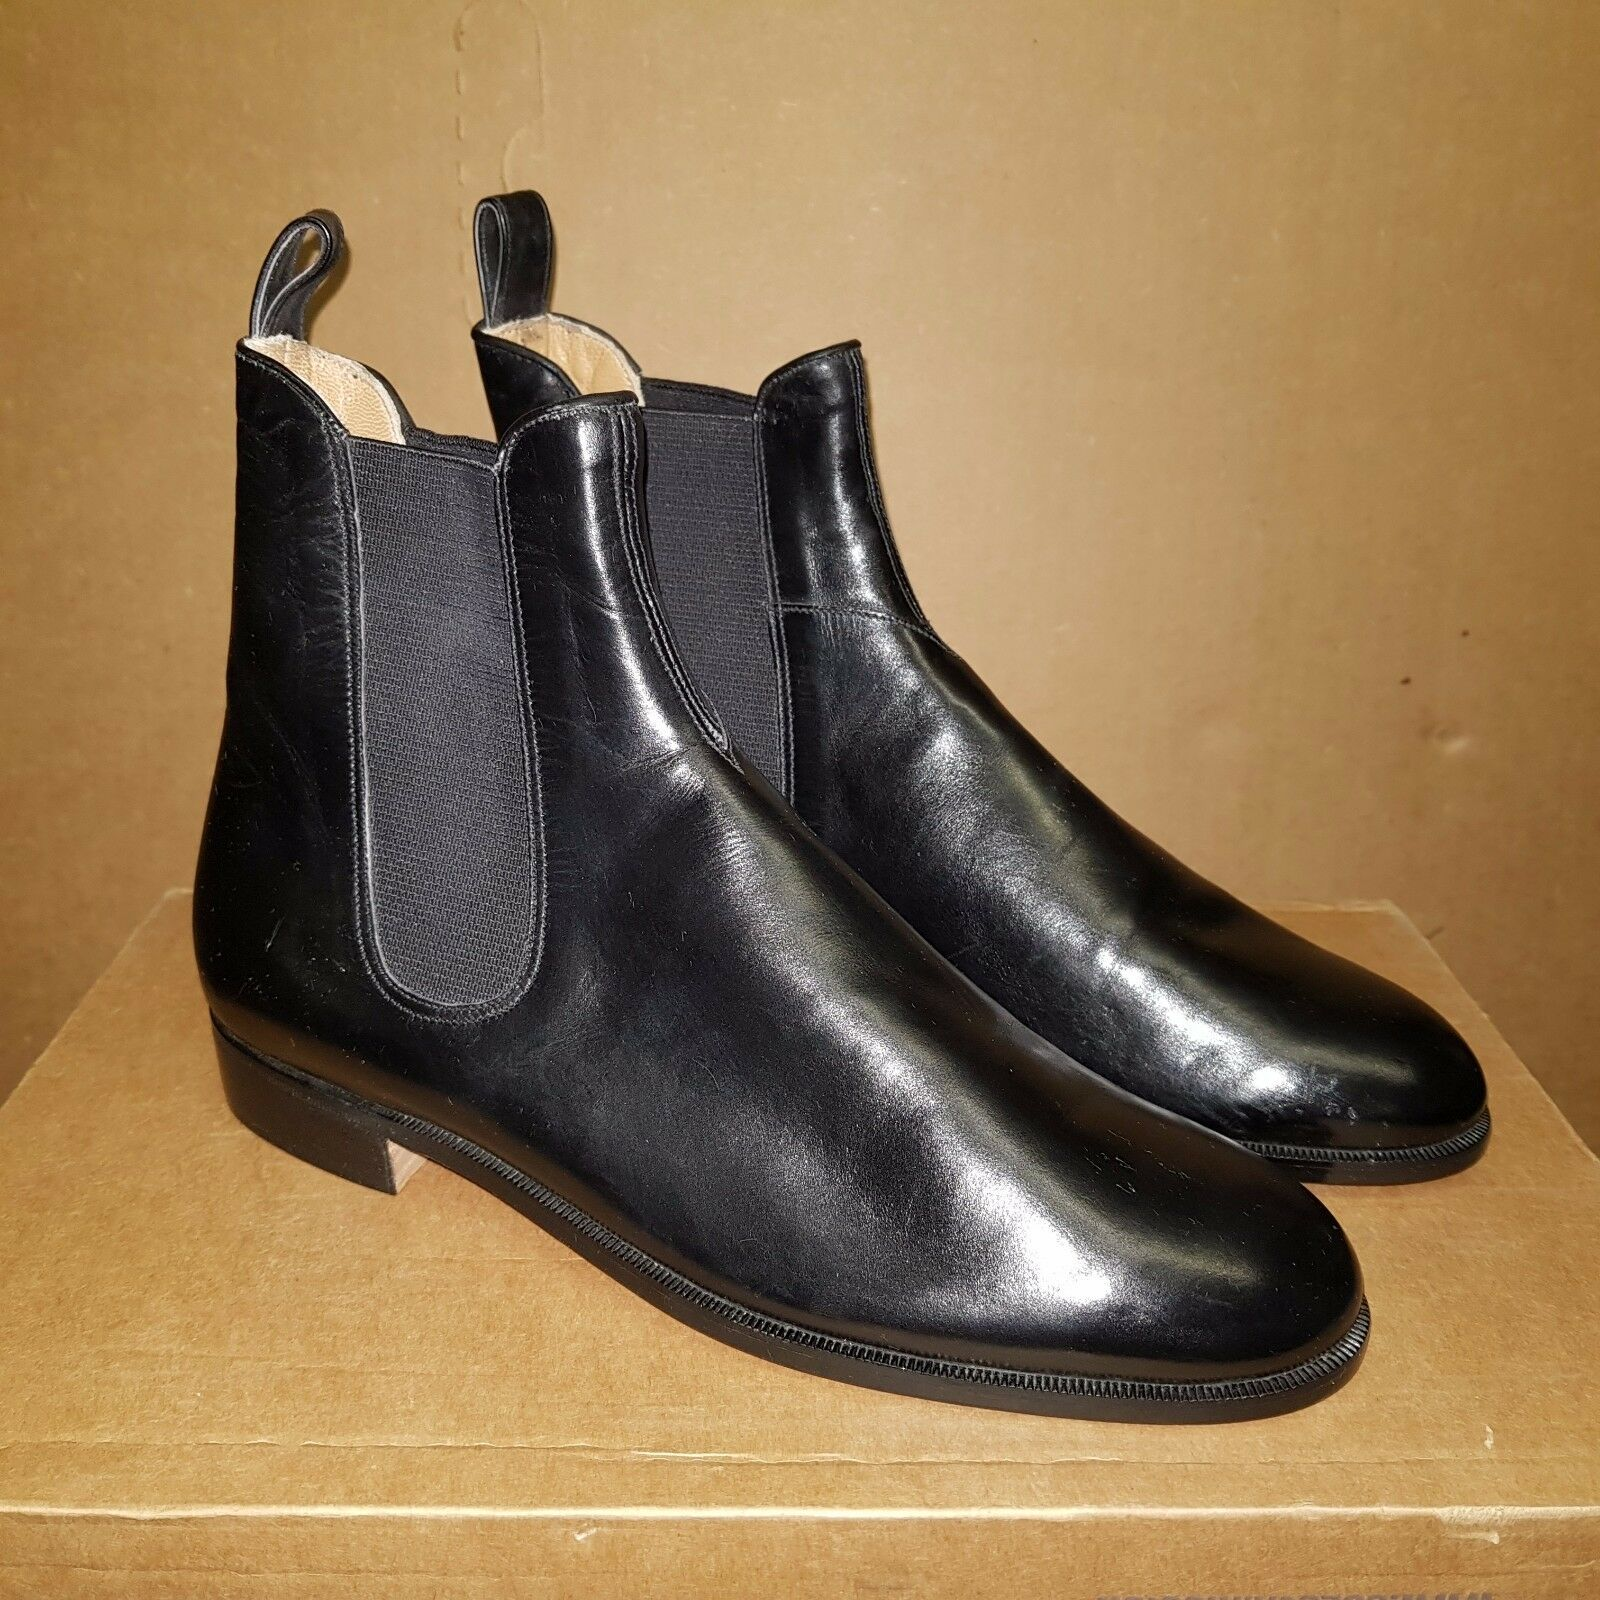 WALTER SHOES  Pampa  Women's Leather Black Ankle Boots UK 3 EUR 36 (pv  )